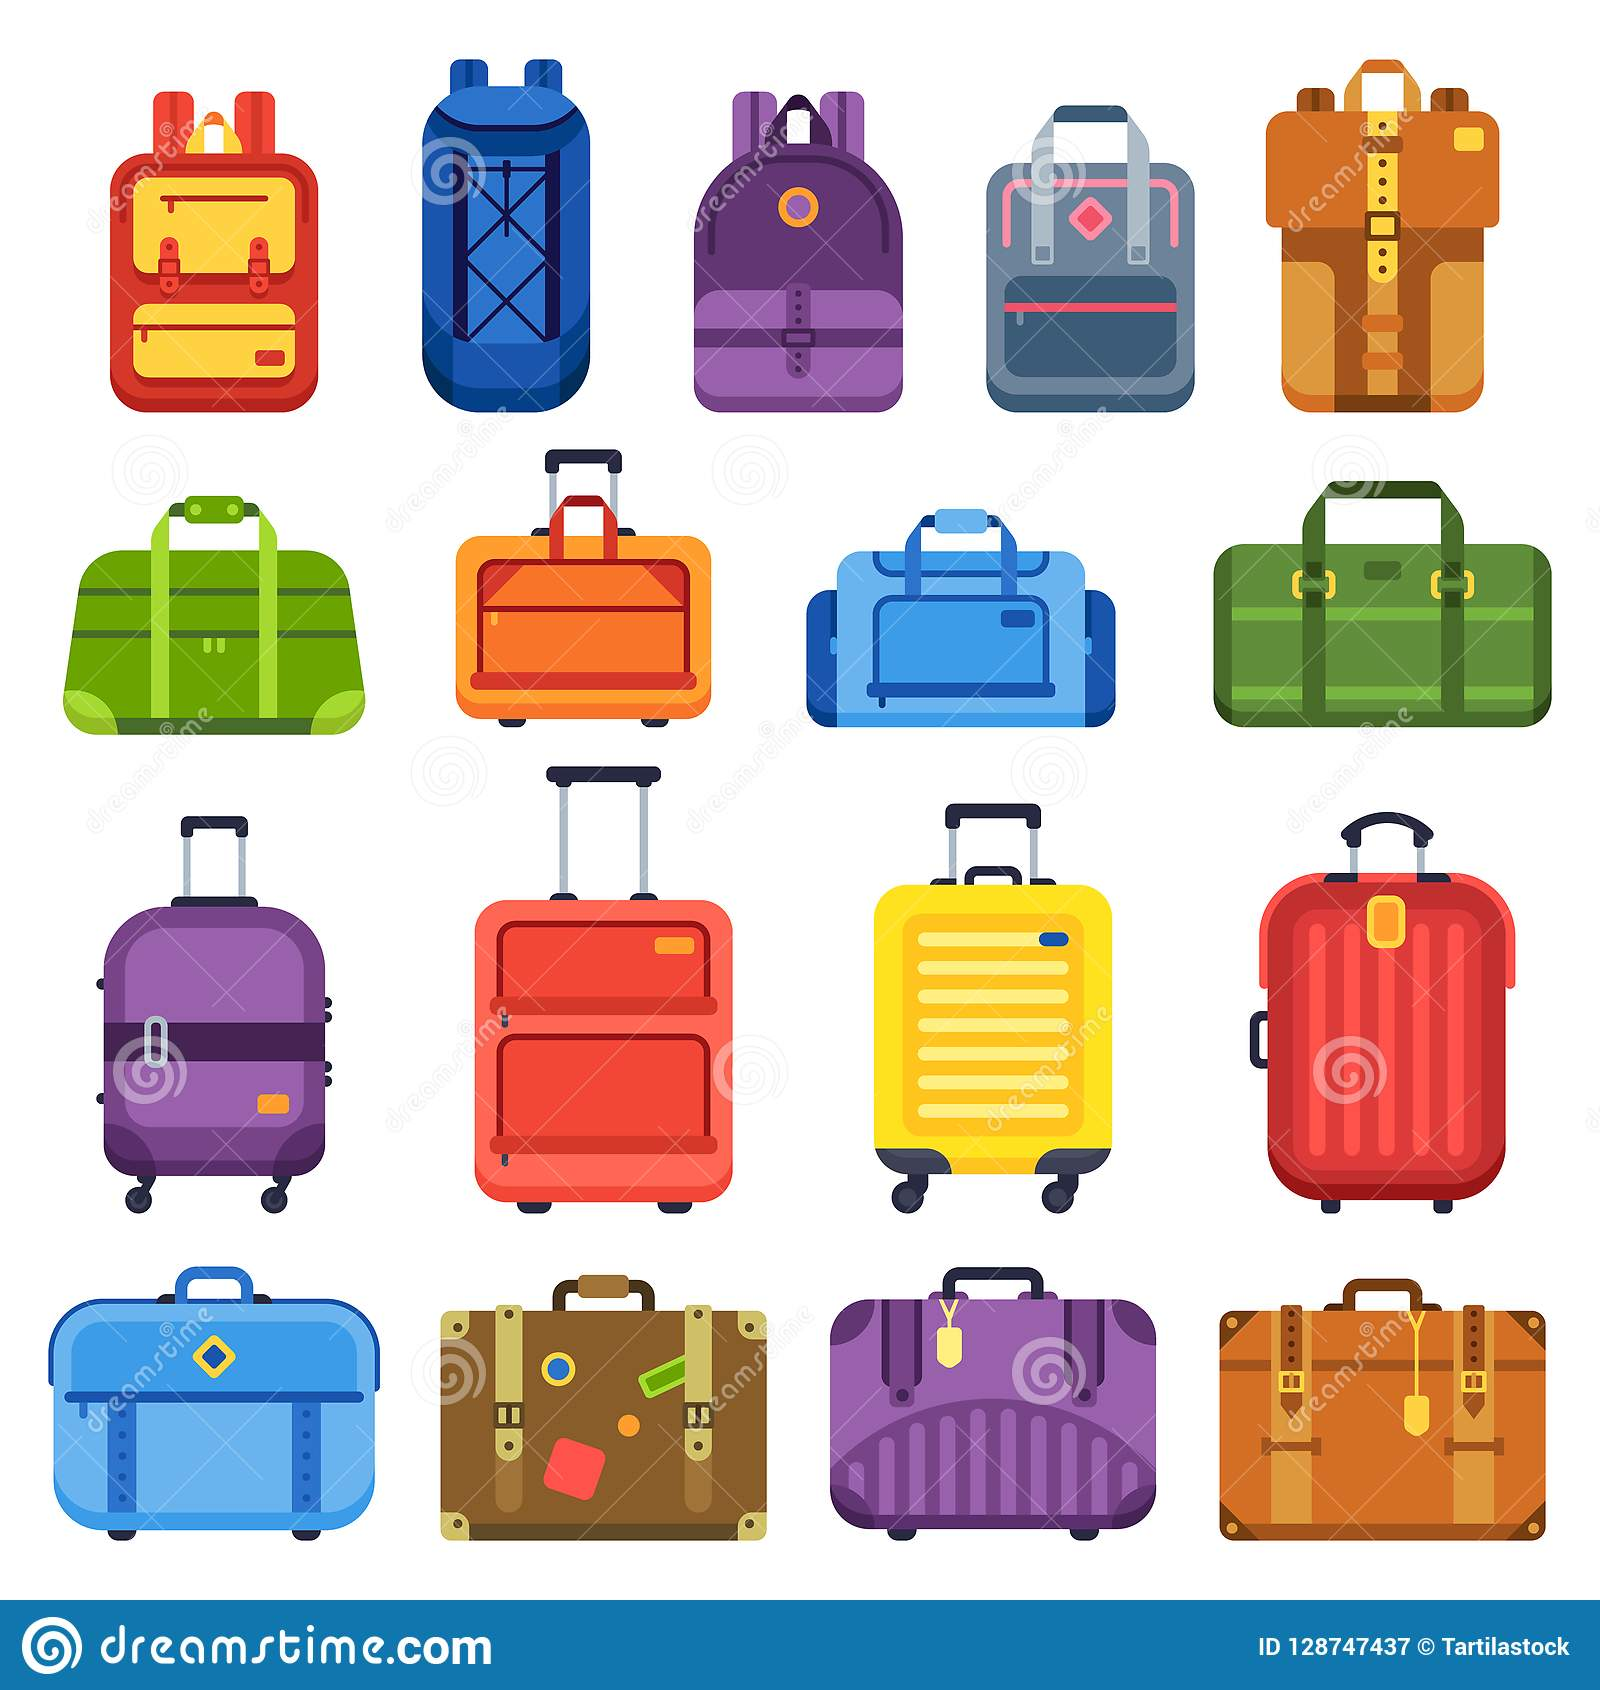 Baggage suitcase. Handle travel bag, luggage backpack and business suitcases isolated flat vector set